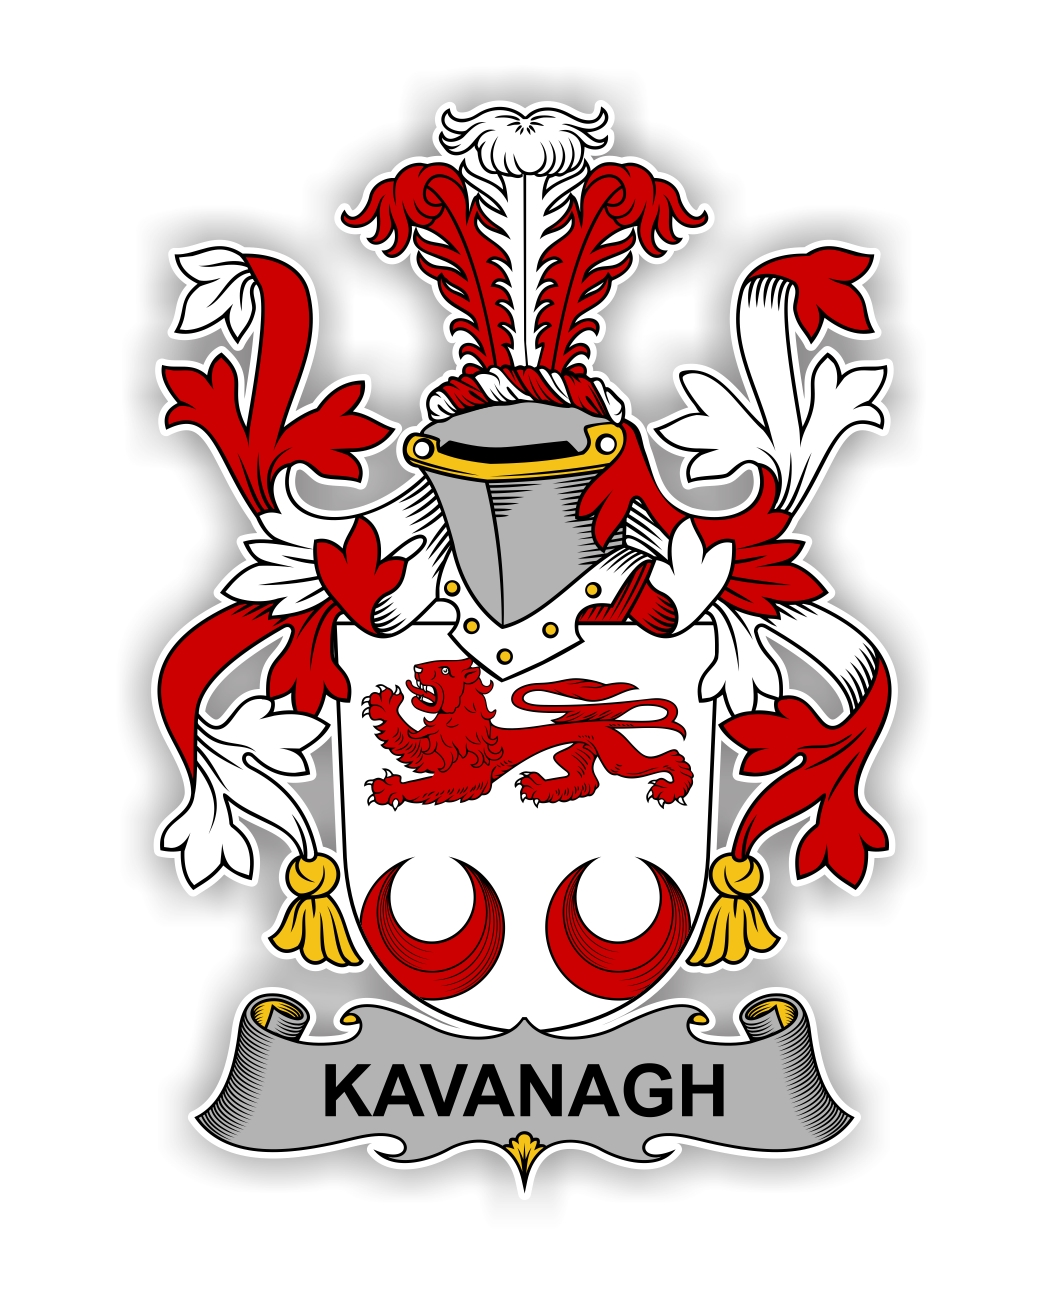 Kavanagh Family Crest Vinyl Die Cut Decal Sticker 4